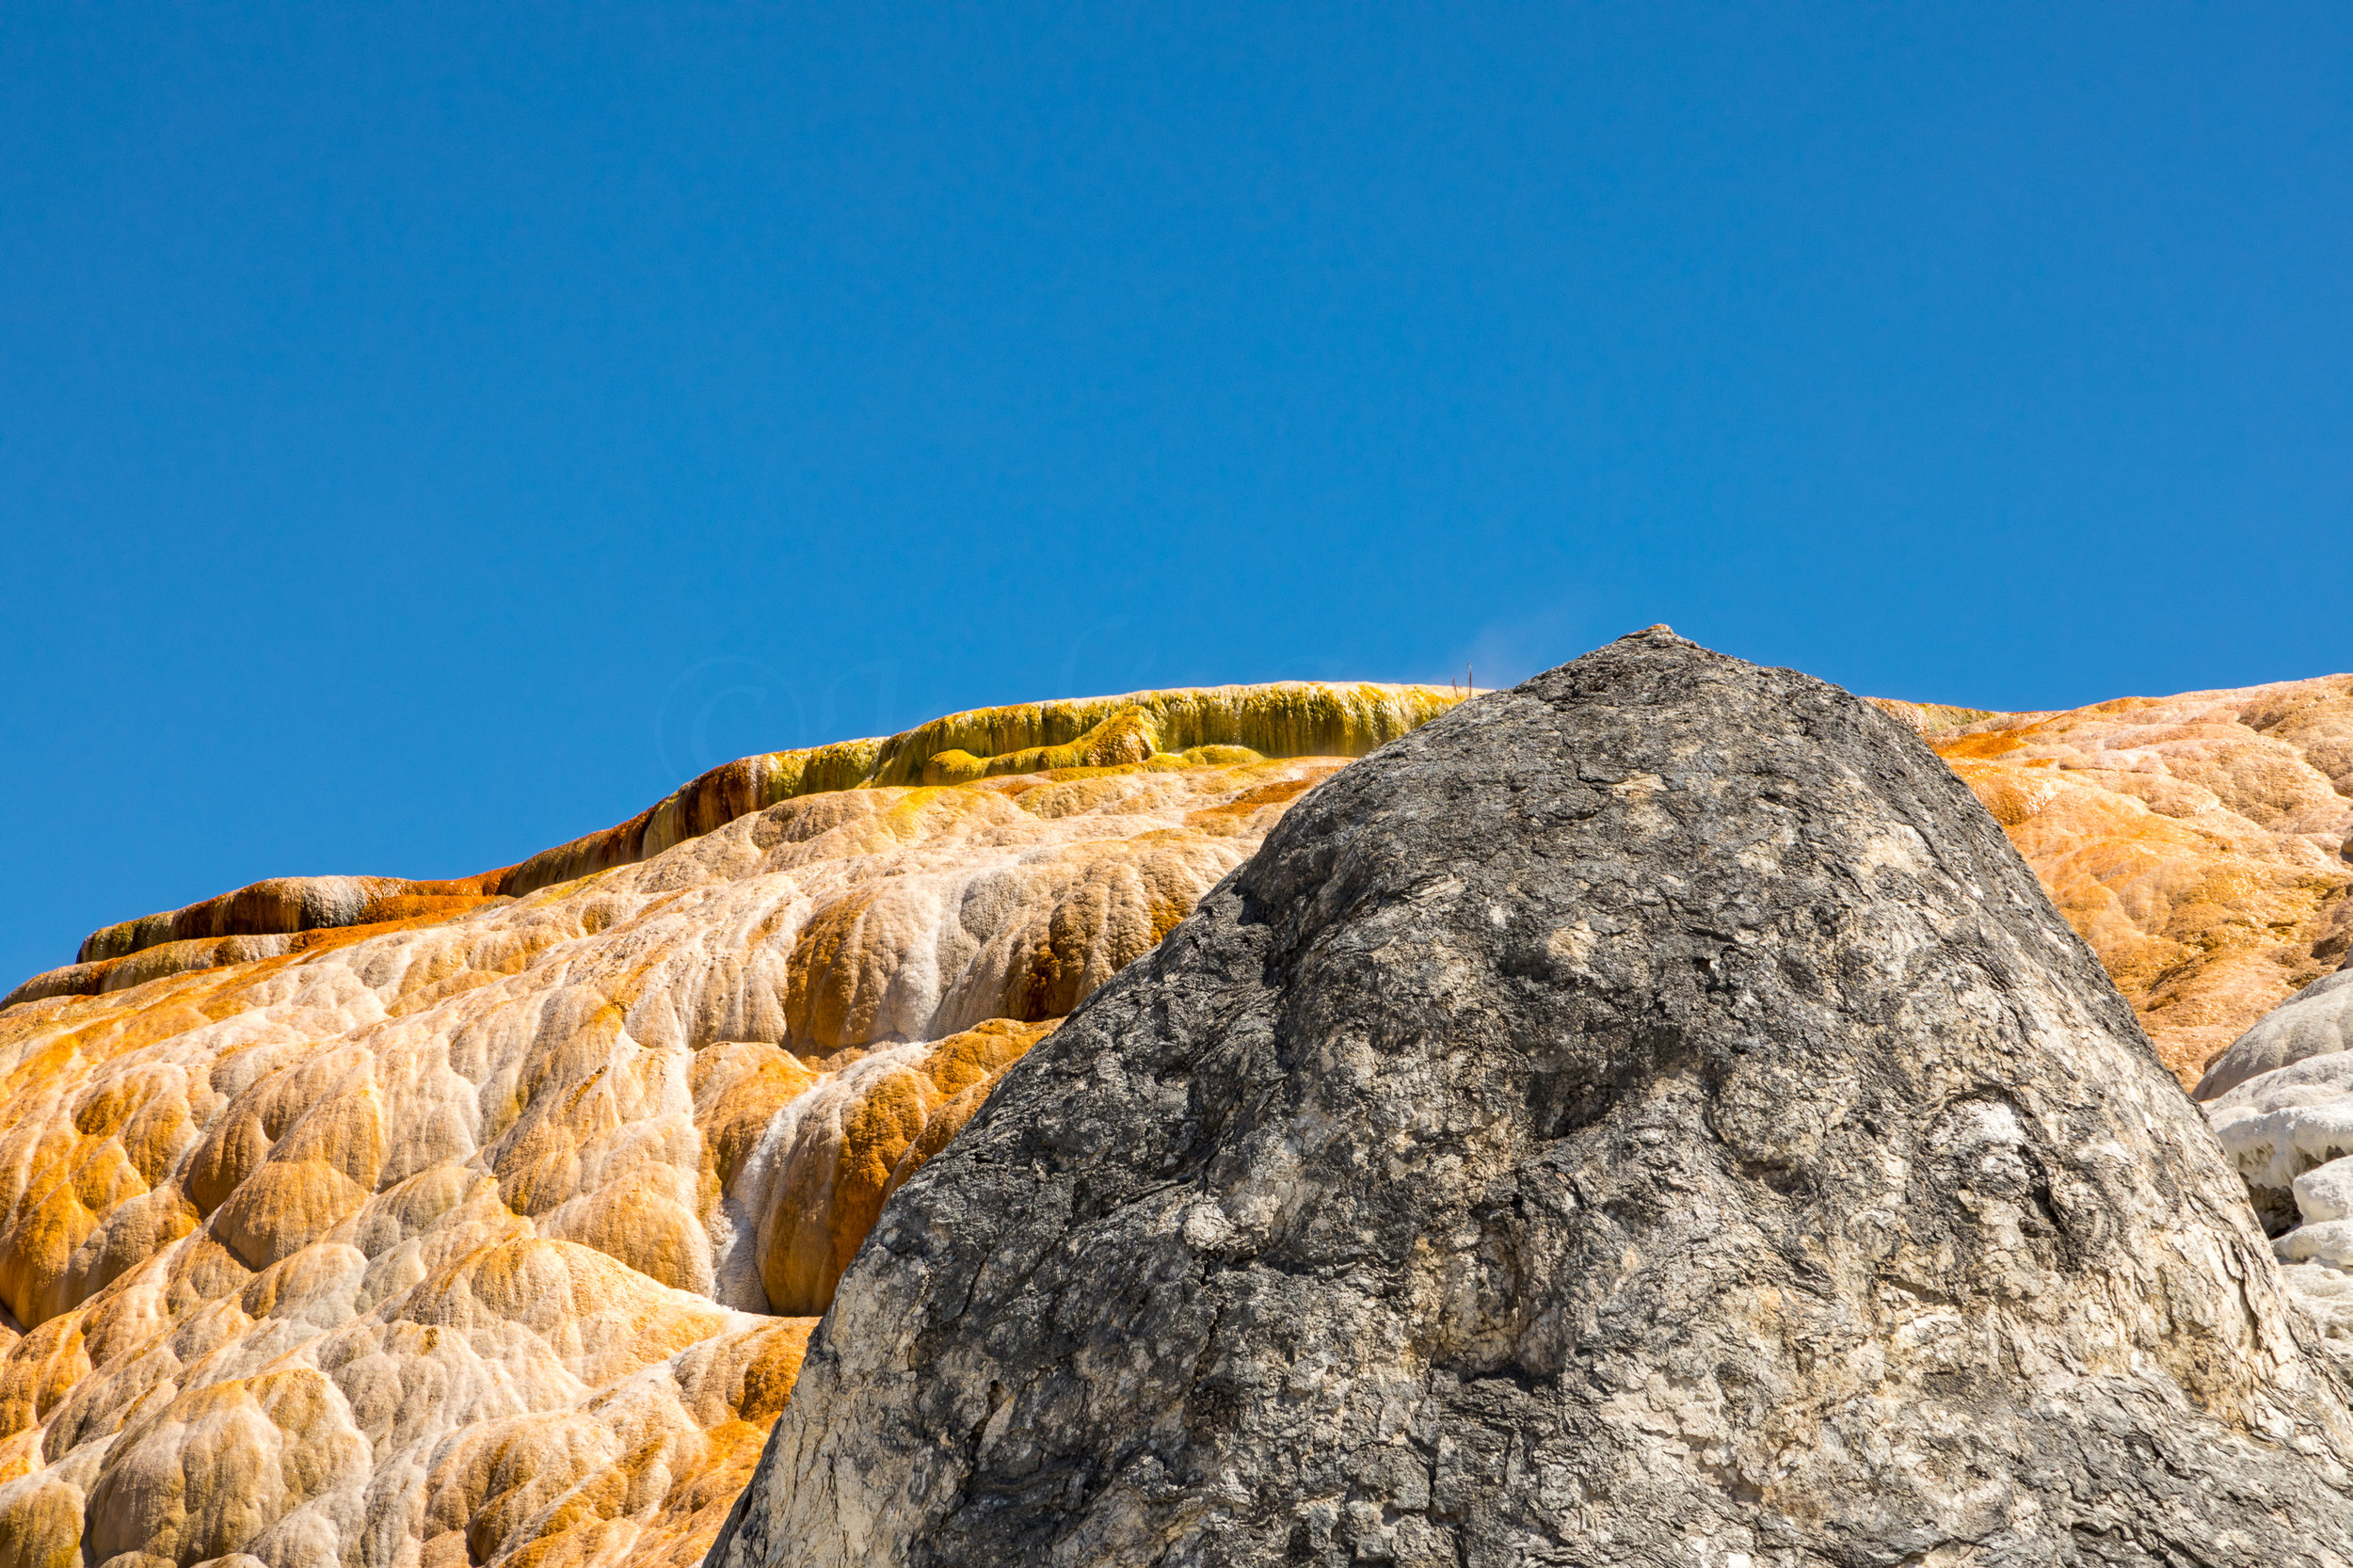 Mammoth Hot Springs, Yellowstone National Park, Image # 7559